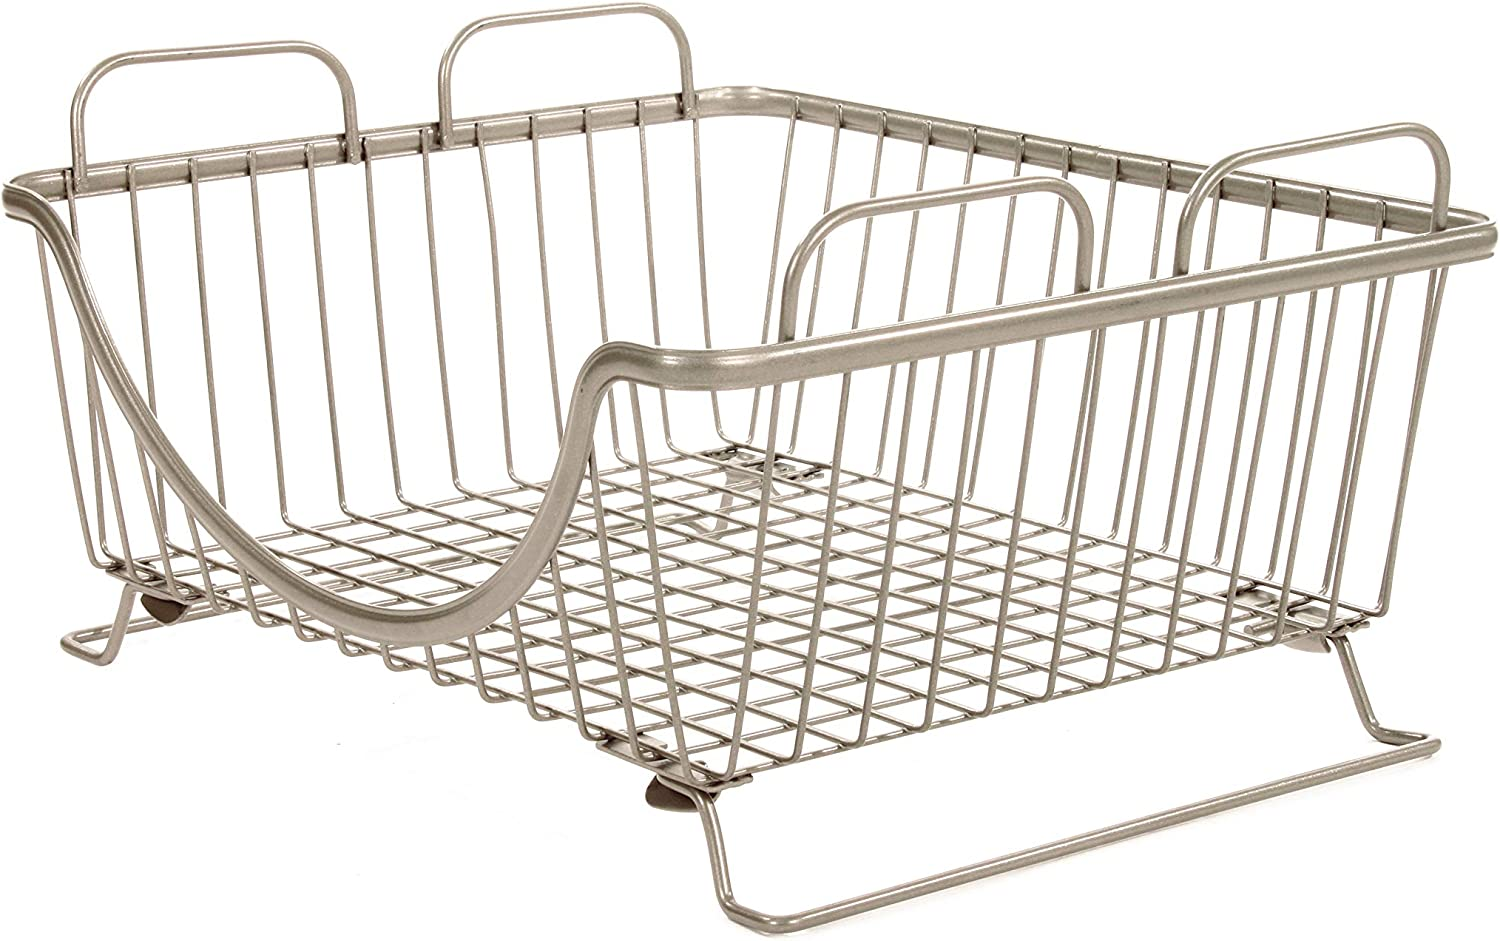 Spectrum Diversified Ashley Stackable Tray, Wire Basket With Raised Feet and Looped Handles Modular Stacking Bin System for Kitchen Countertop & Desk Organization, Satin Nickel